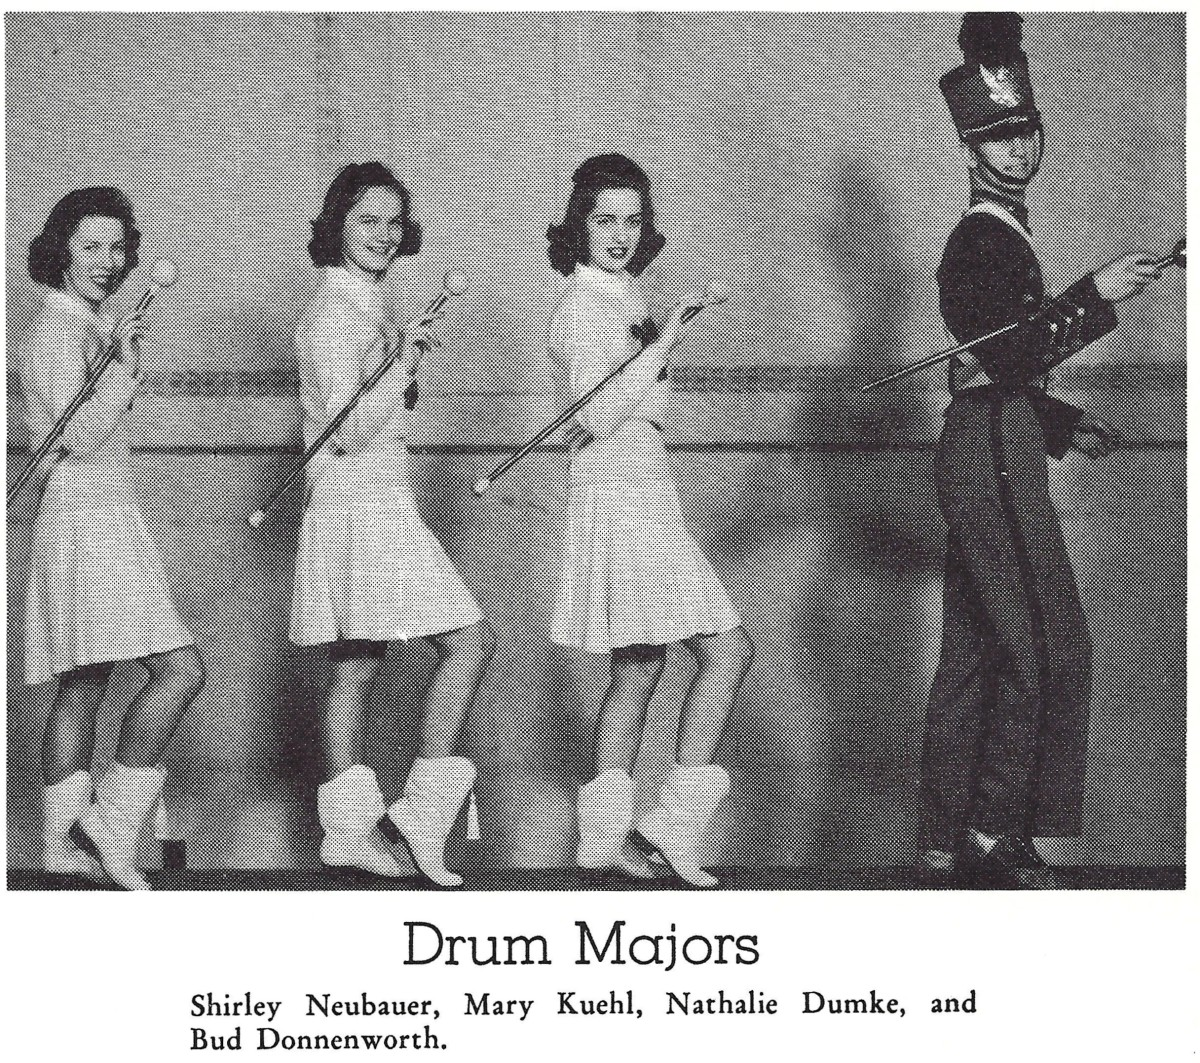 The band and these drum majors would have been busy at many of the athletic events.